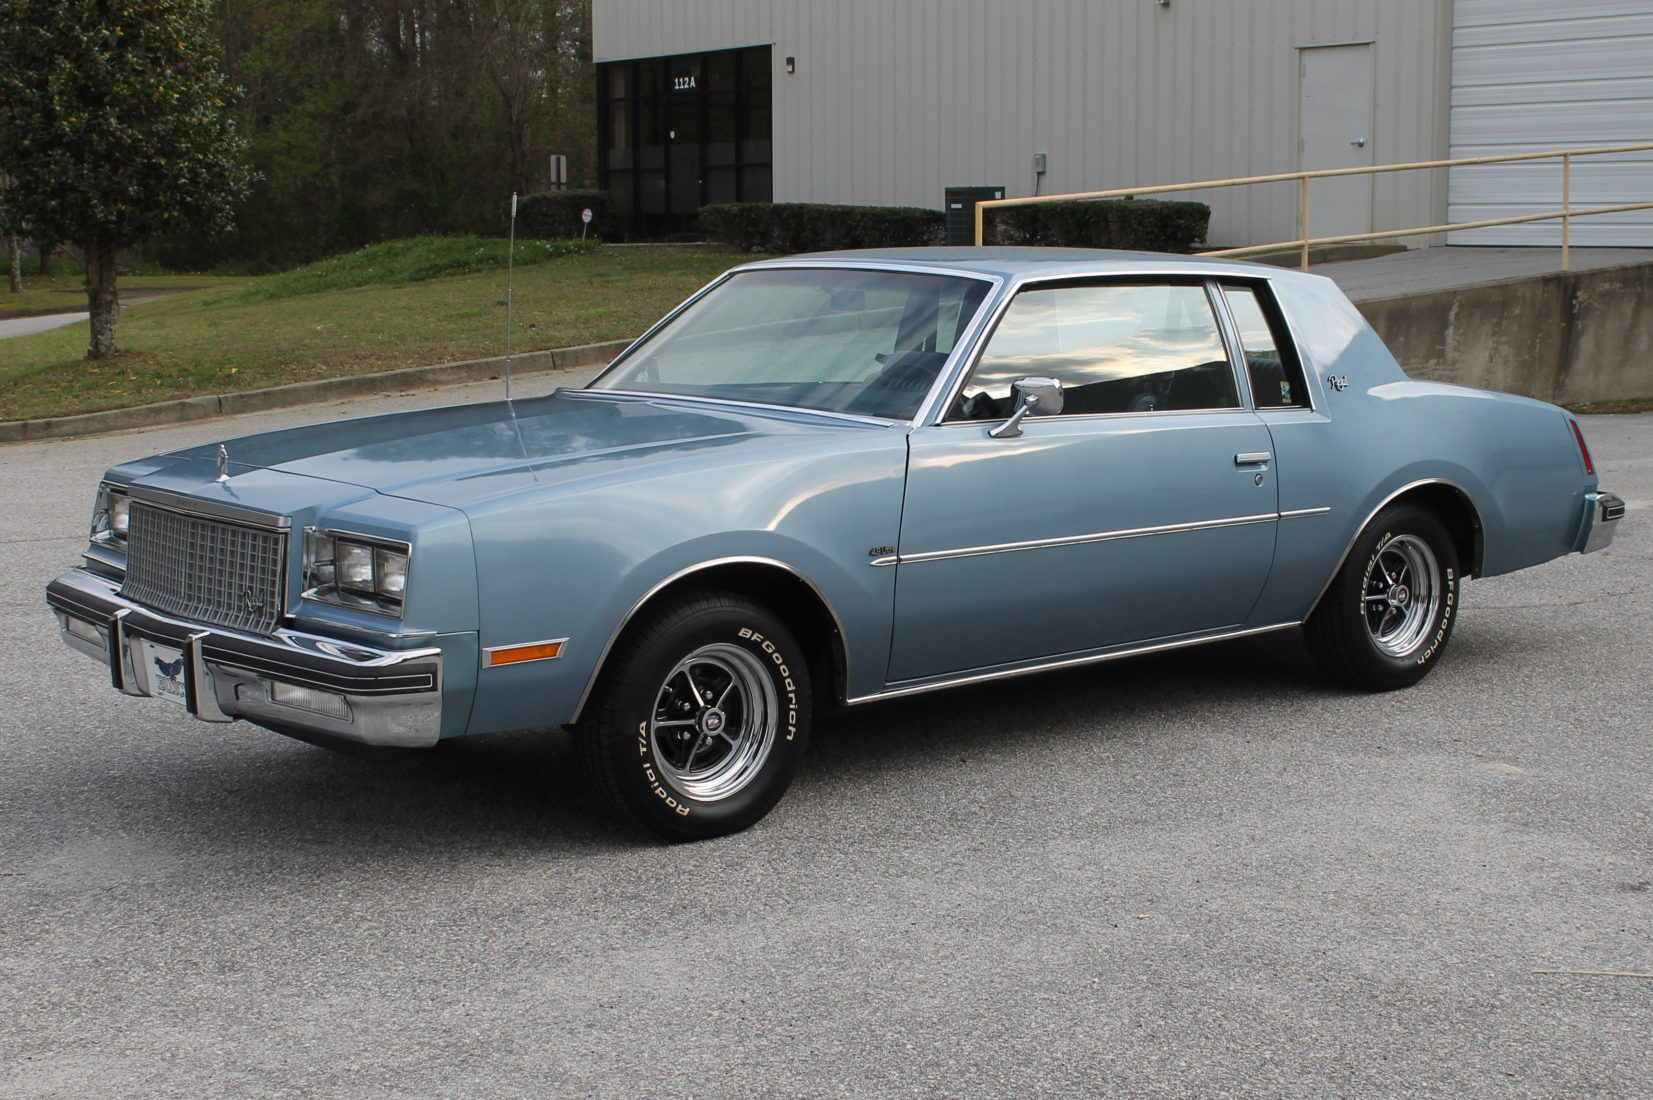 hight resolution of 8k mile 1980 buick regal for sale on bat auctions sold for 10 000 on june 14 2019 lot 19 861 bring a trailer